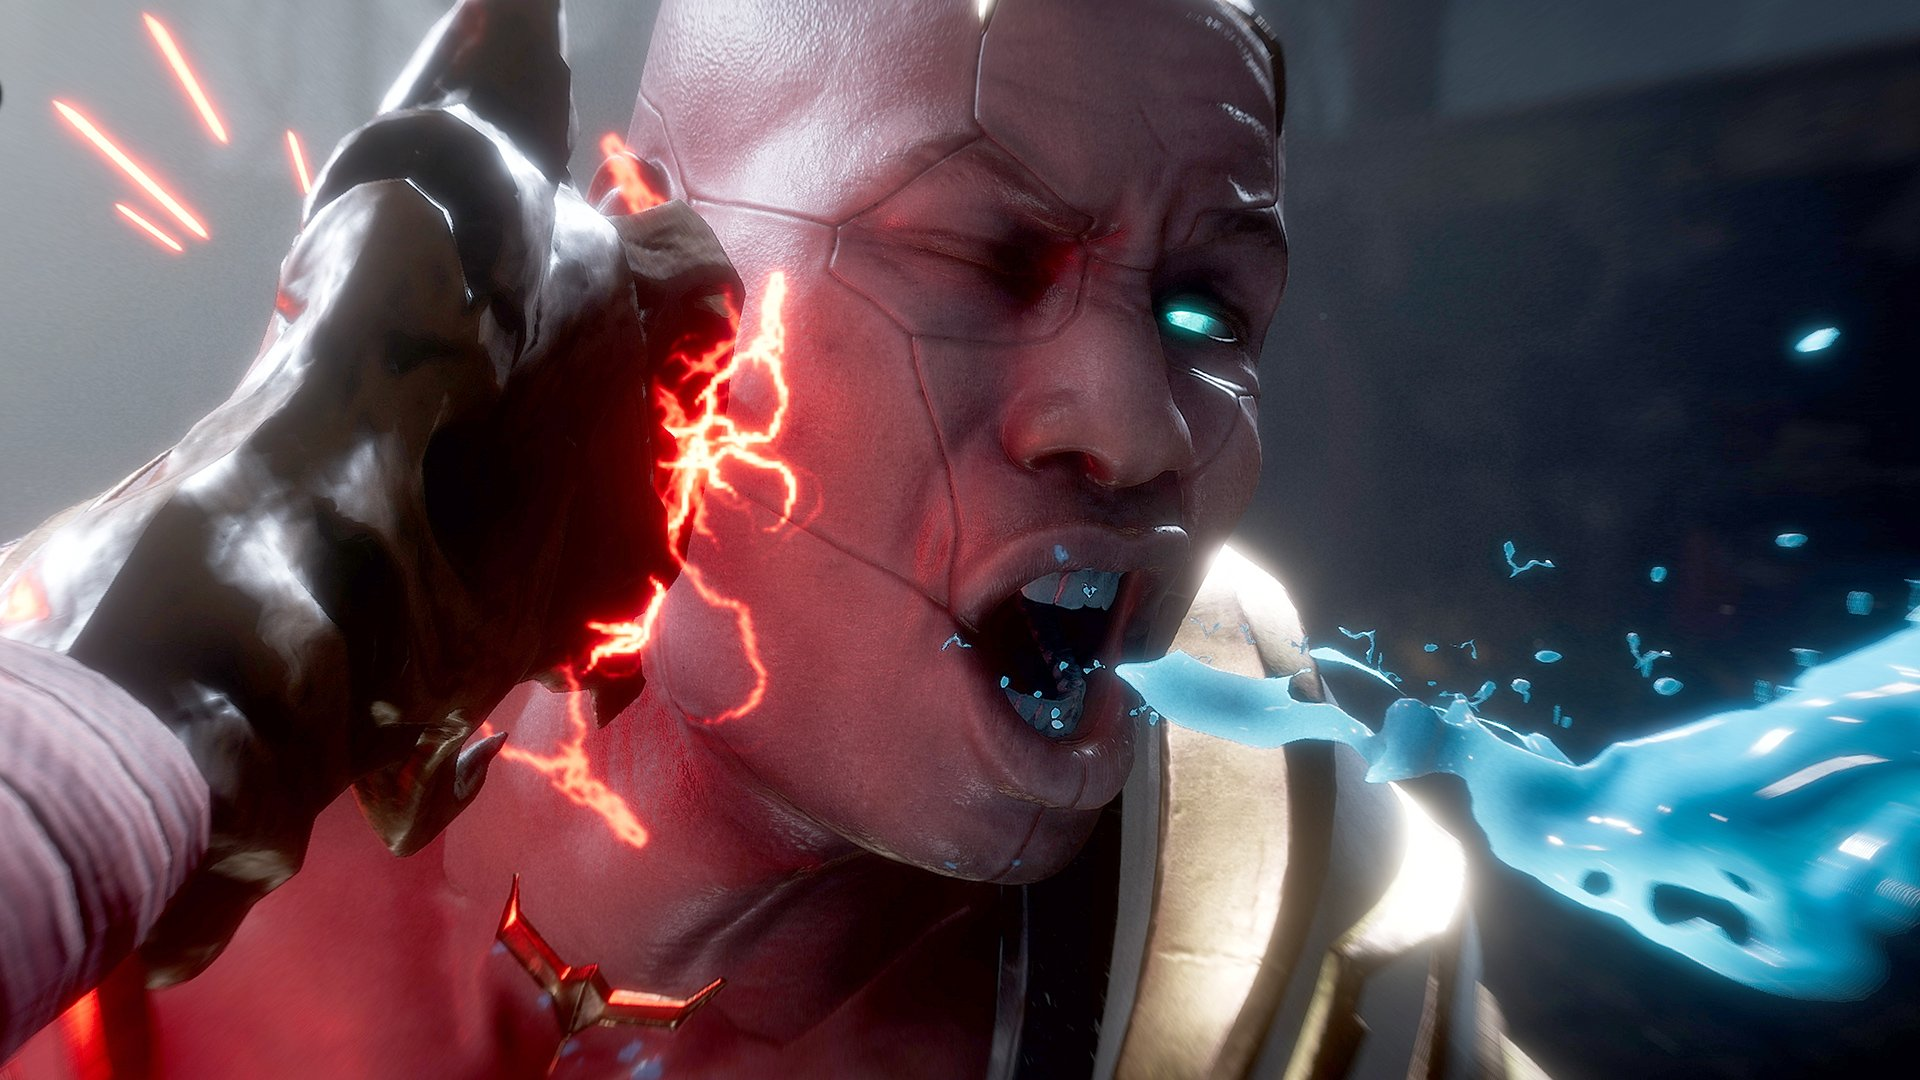 Mortal Kombat 11 All Fatalities And Fatal Blows In 4k 60fps So